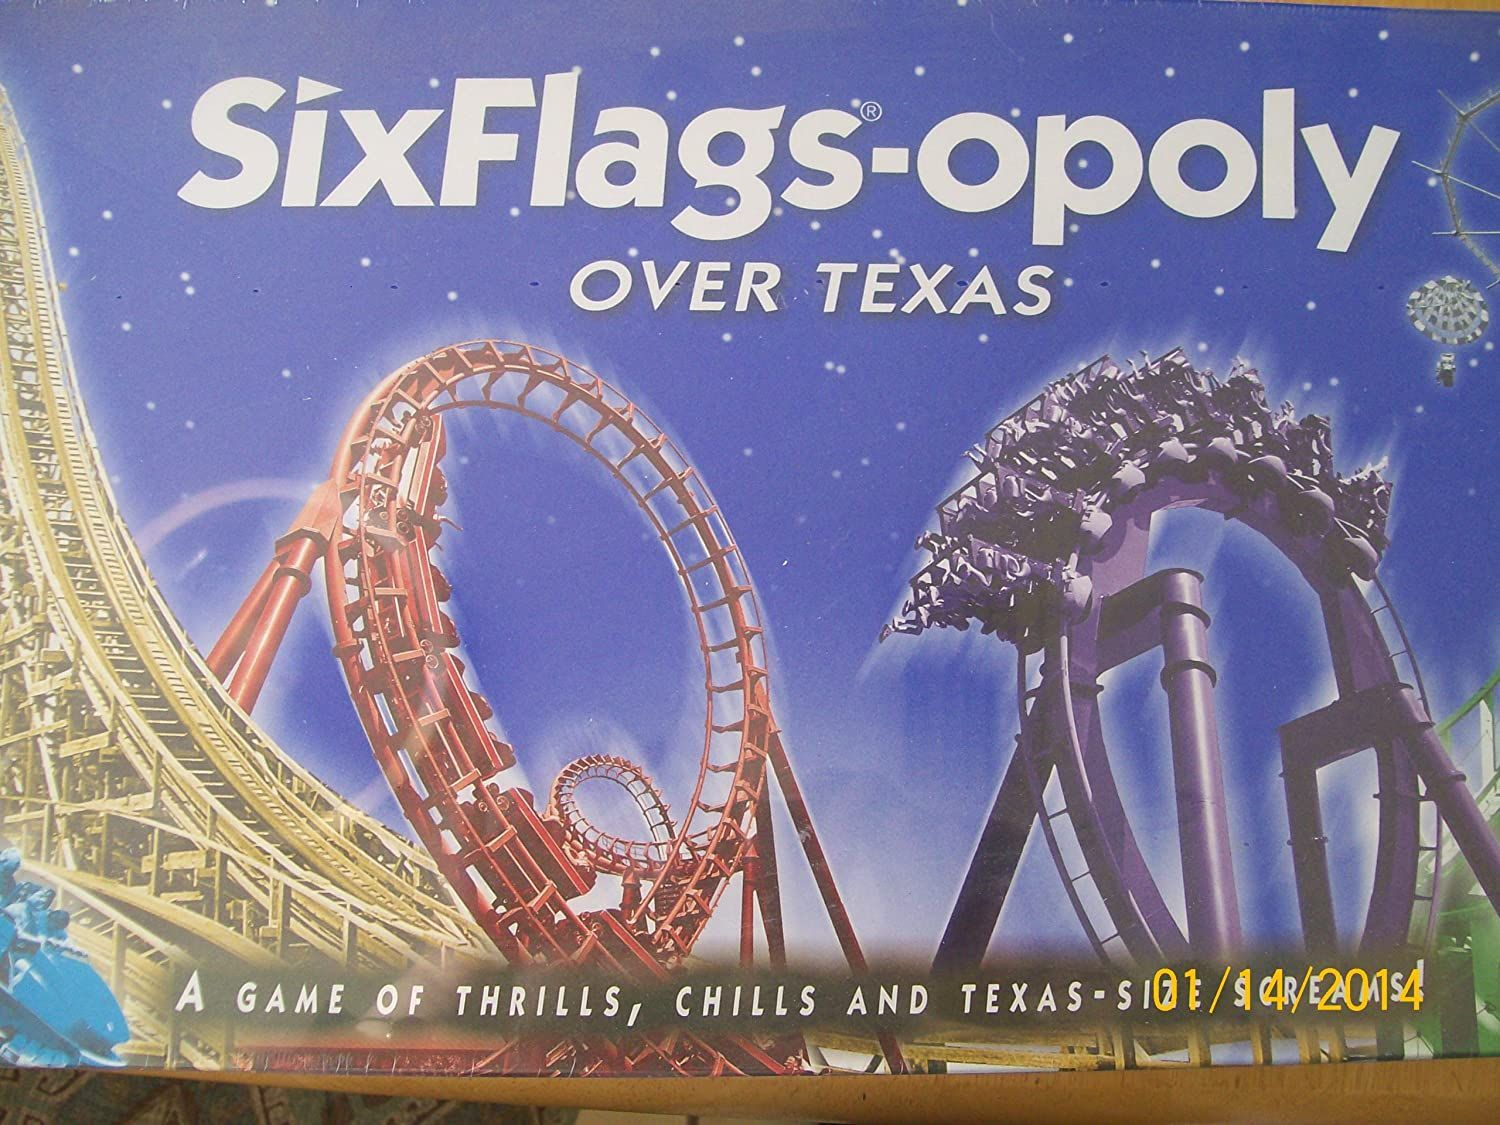 This Is A Pre Loved Game Missing The Boomtown Station Card Six Flags Six Flags Zulu Pensacola Beach Nightlife Tr In 2020 Six Flags Italy Travel Guide Las Vegas Hotels